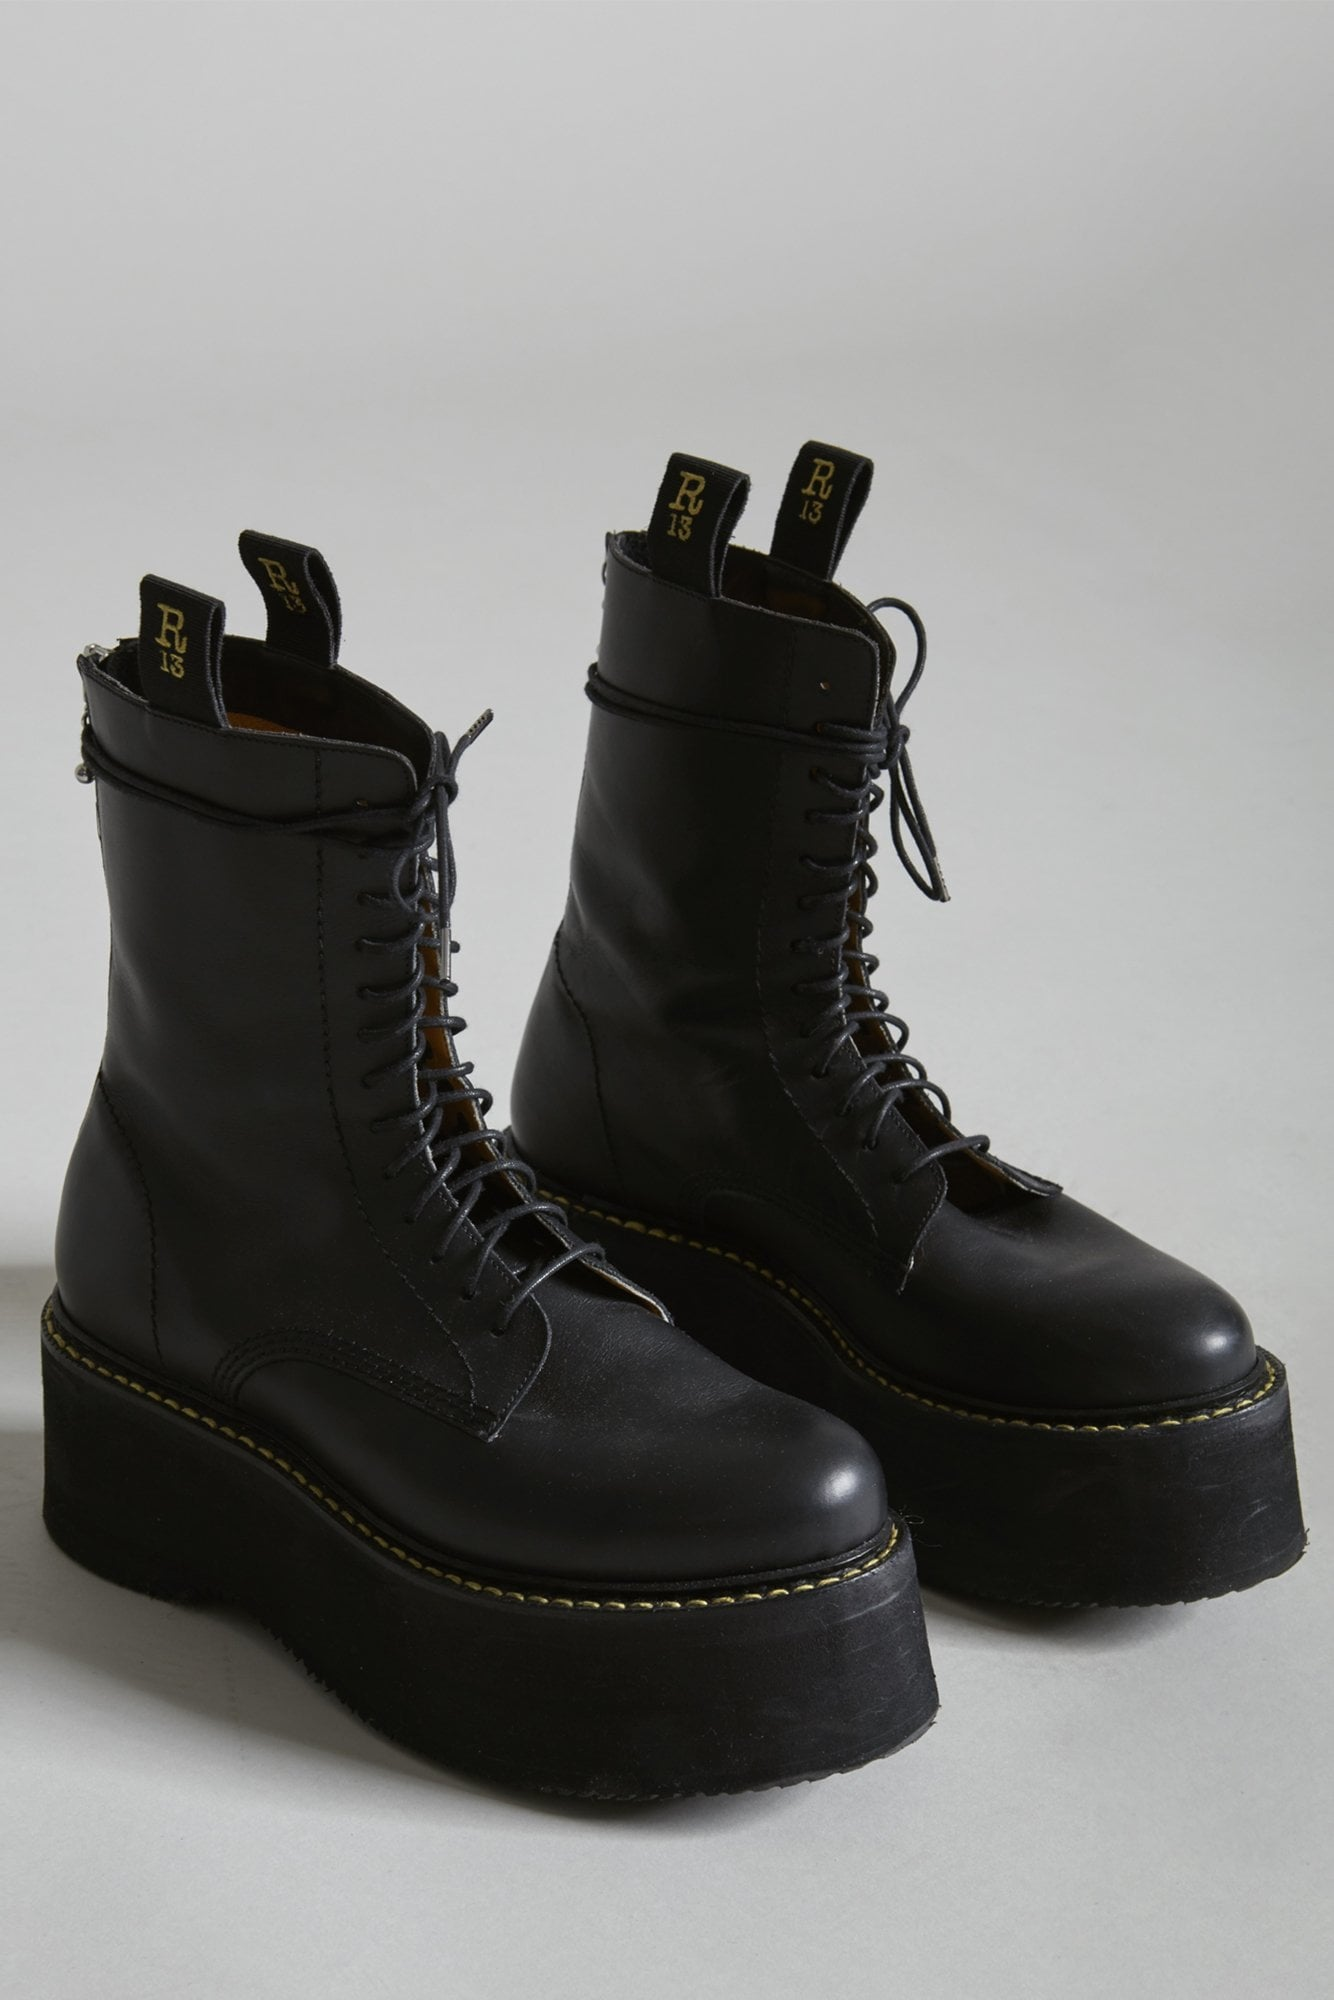 Limited Double Stack Boot - Yellow Stitch